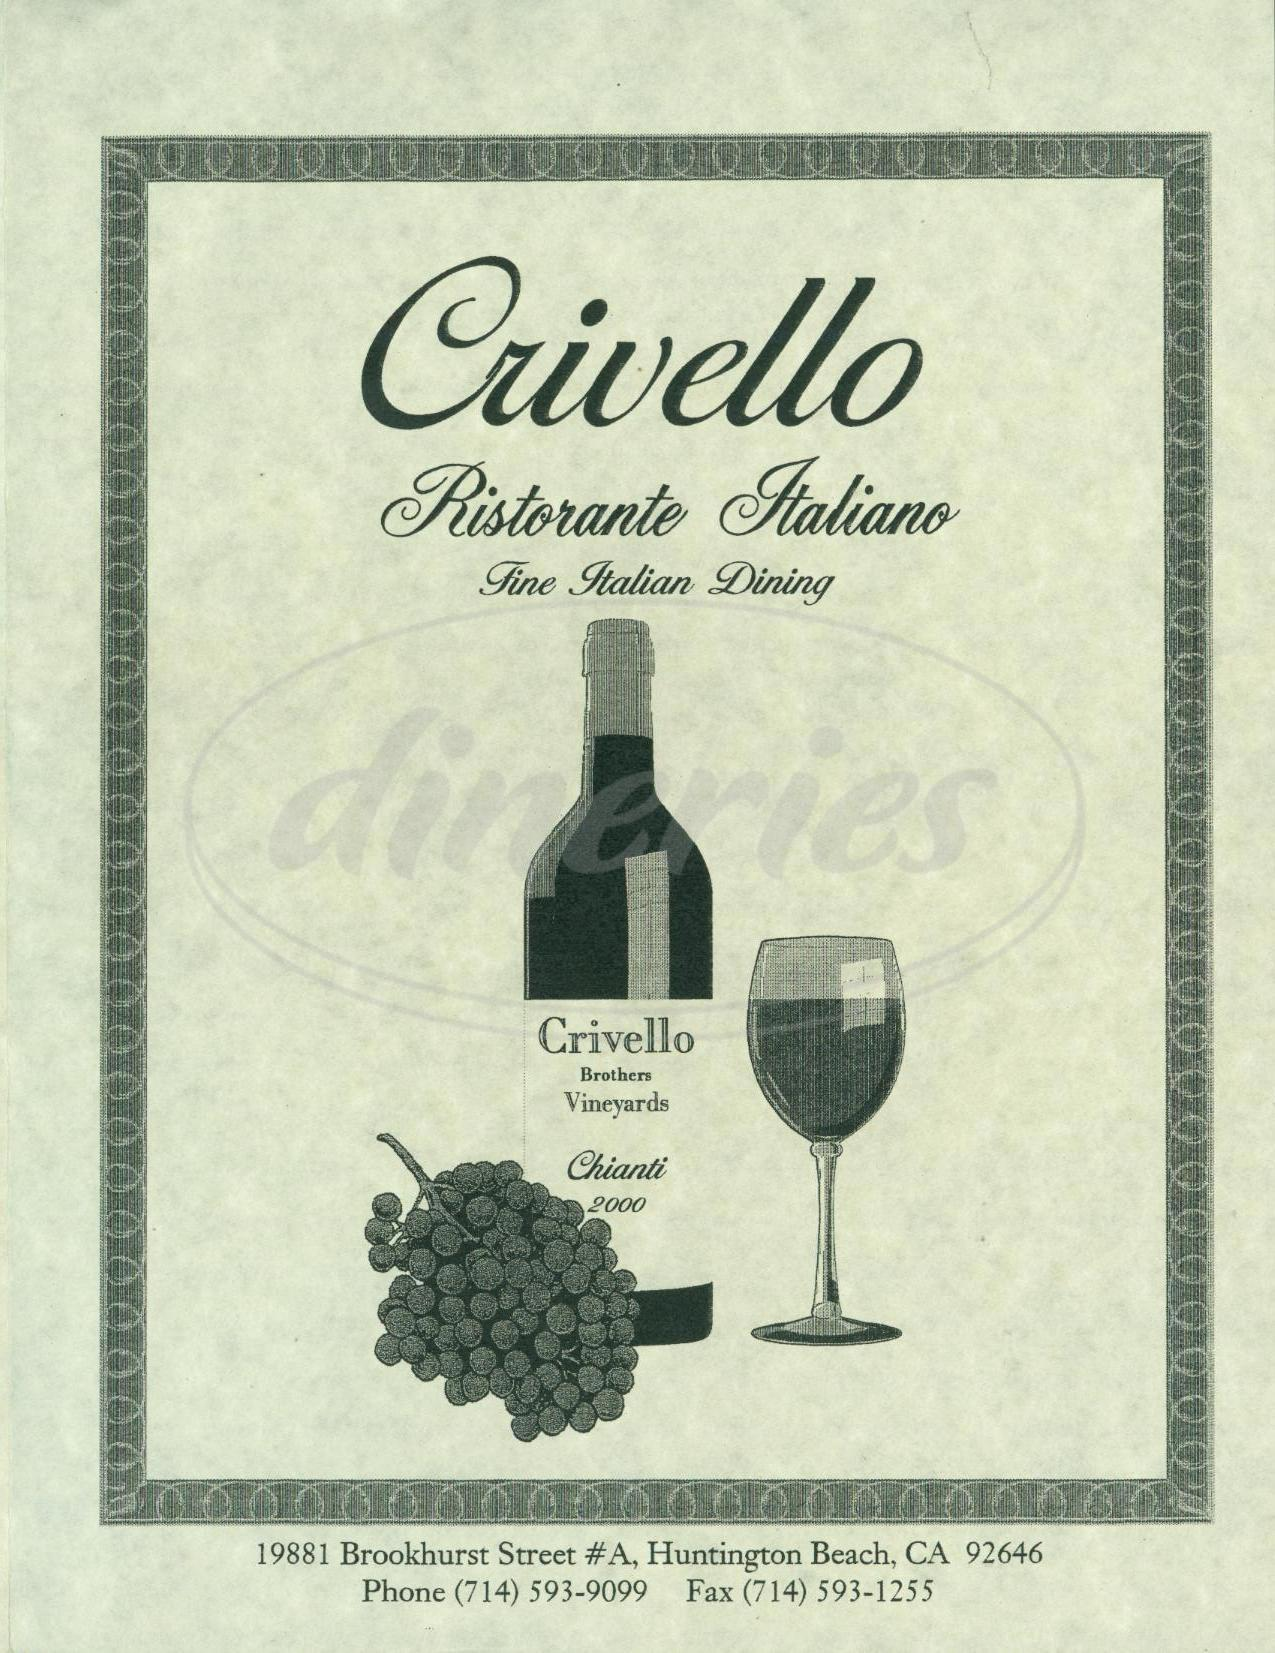 menu for Crivello Ristorante Italiano